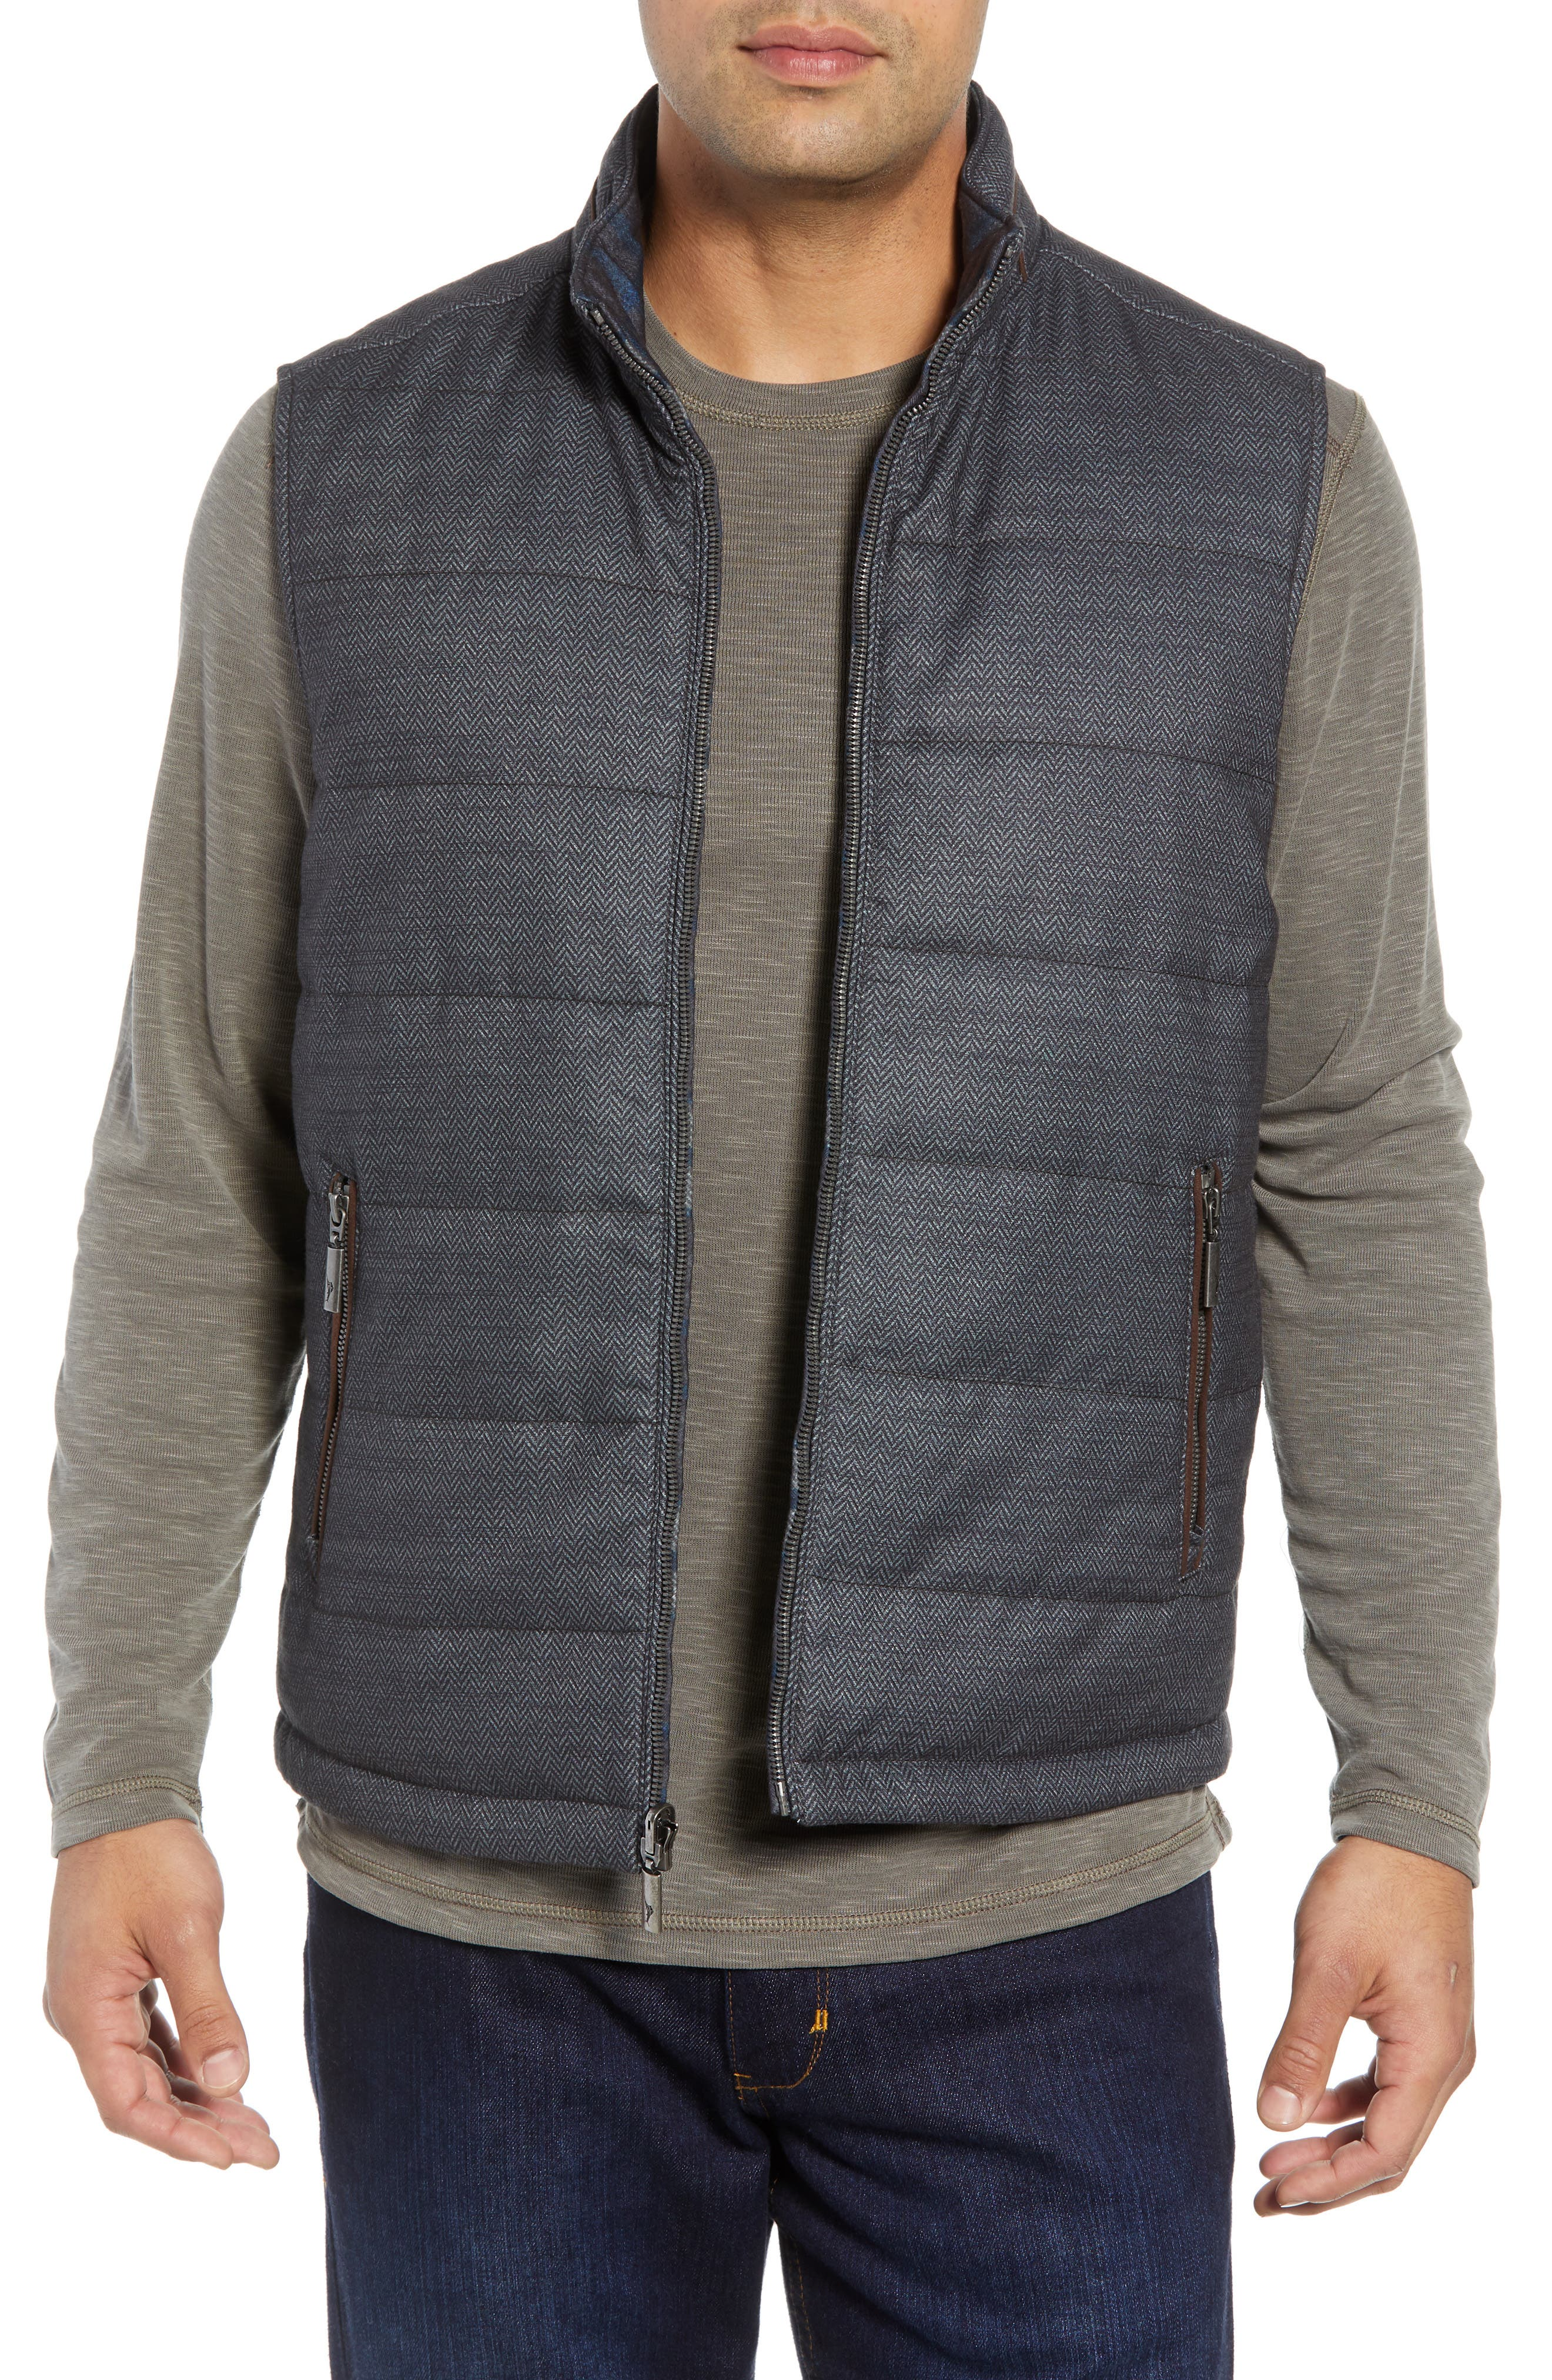 Dublin Duo Reversible Quilted Vest,                             Main thumbnail 1, color,                             SHADOW